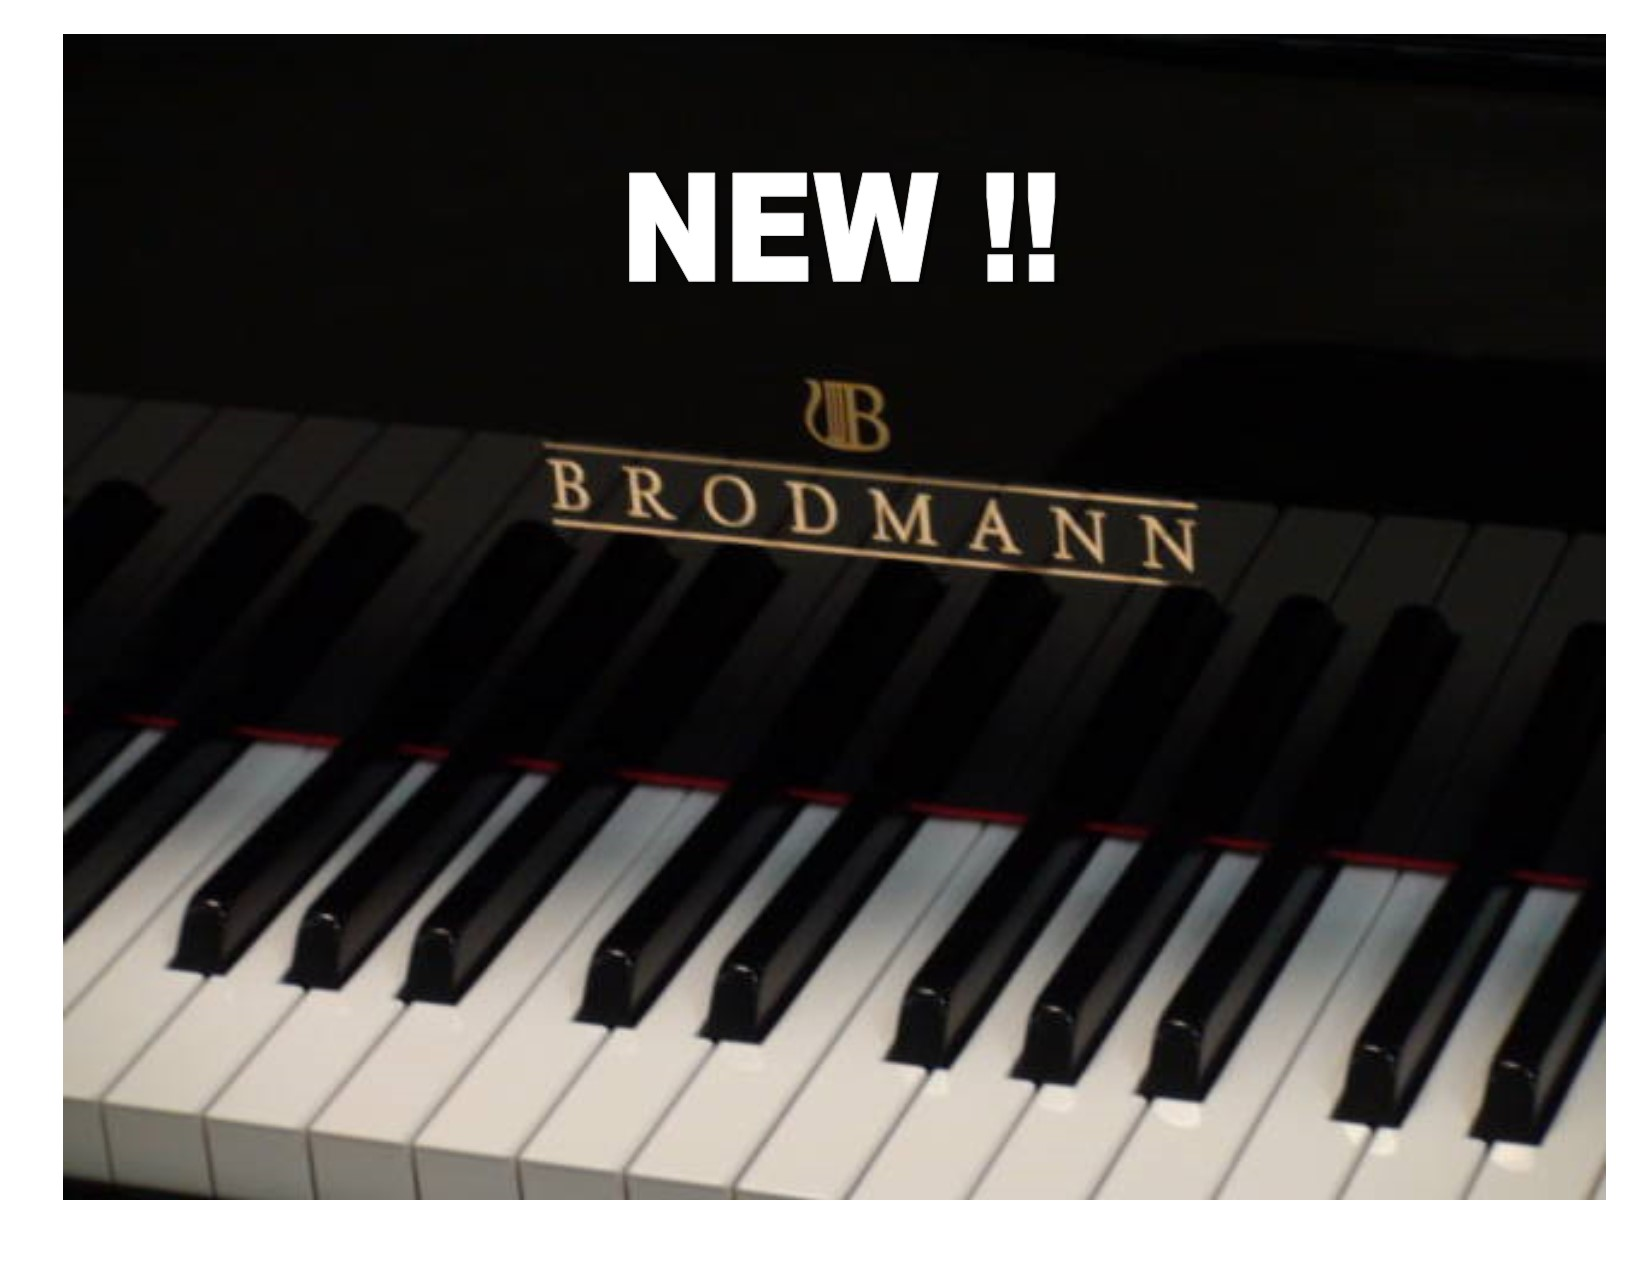 "12515<br><font color=black><b>NEW BRODMANN </b></font> 6'2″  GRAND<br>•European Built<br> •European Tradition<br> •European Sound <br><font color=blue><b>Click Picture for ""Live Video""</b></font> <br>"